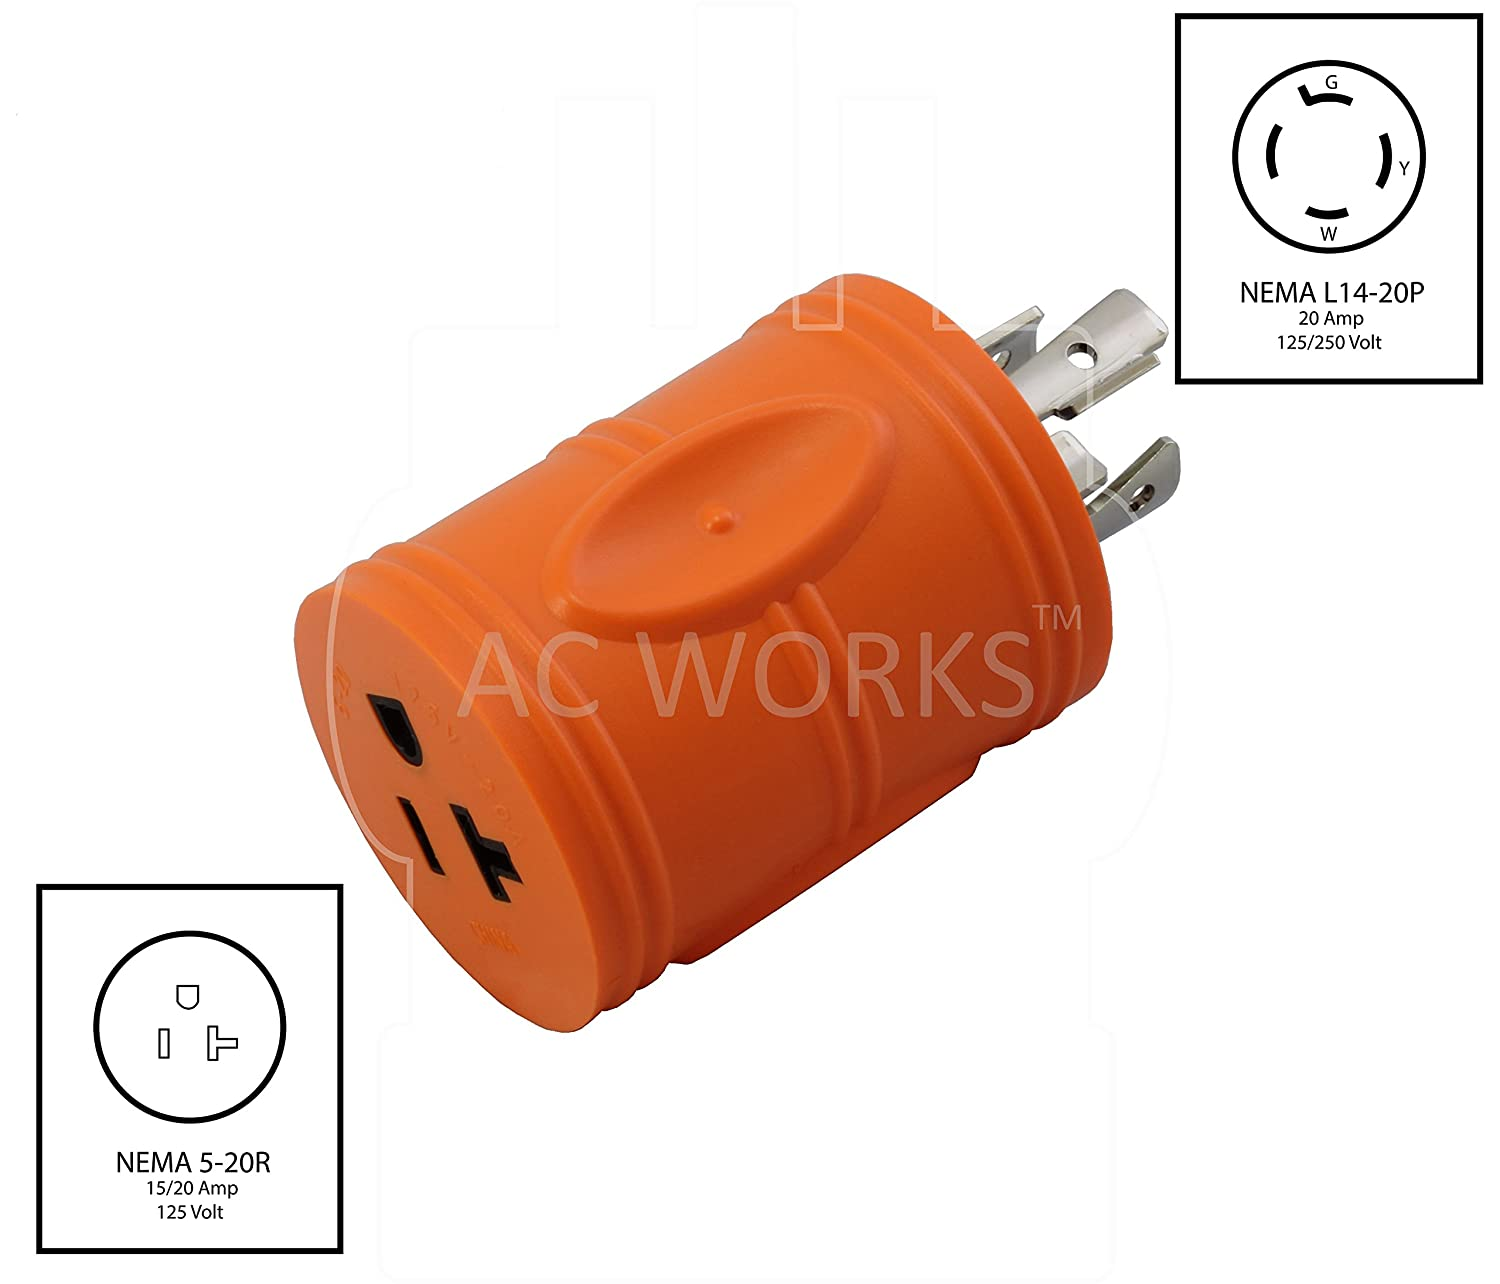 Ac Works Adl1420520 Locking Adapter L14 20p 20a 125 250volt 4prong Nema 20r Wiring Diagram Male Plug To 5 15 Regular Household 20amp Female Connector